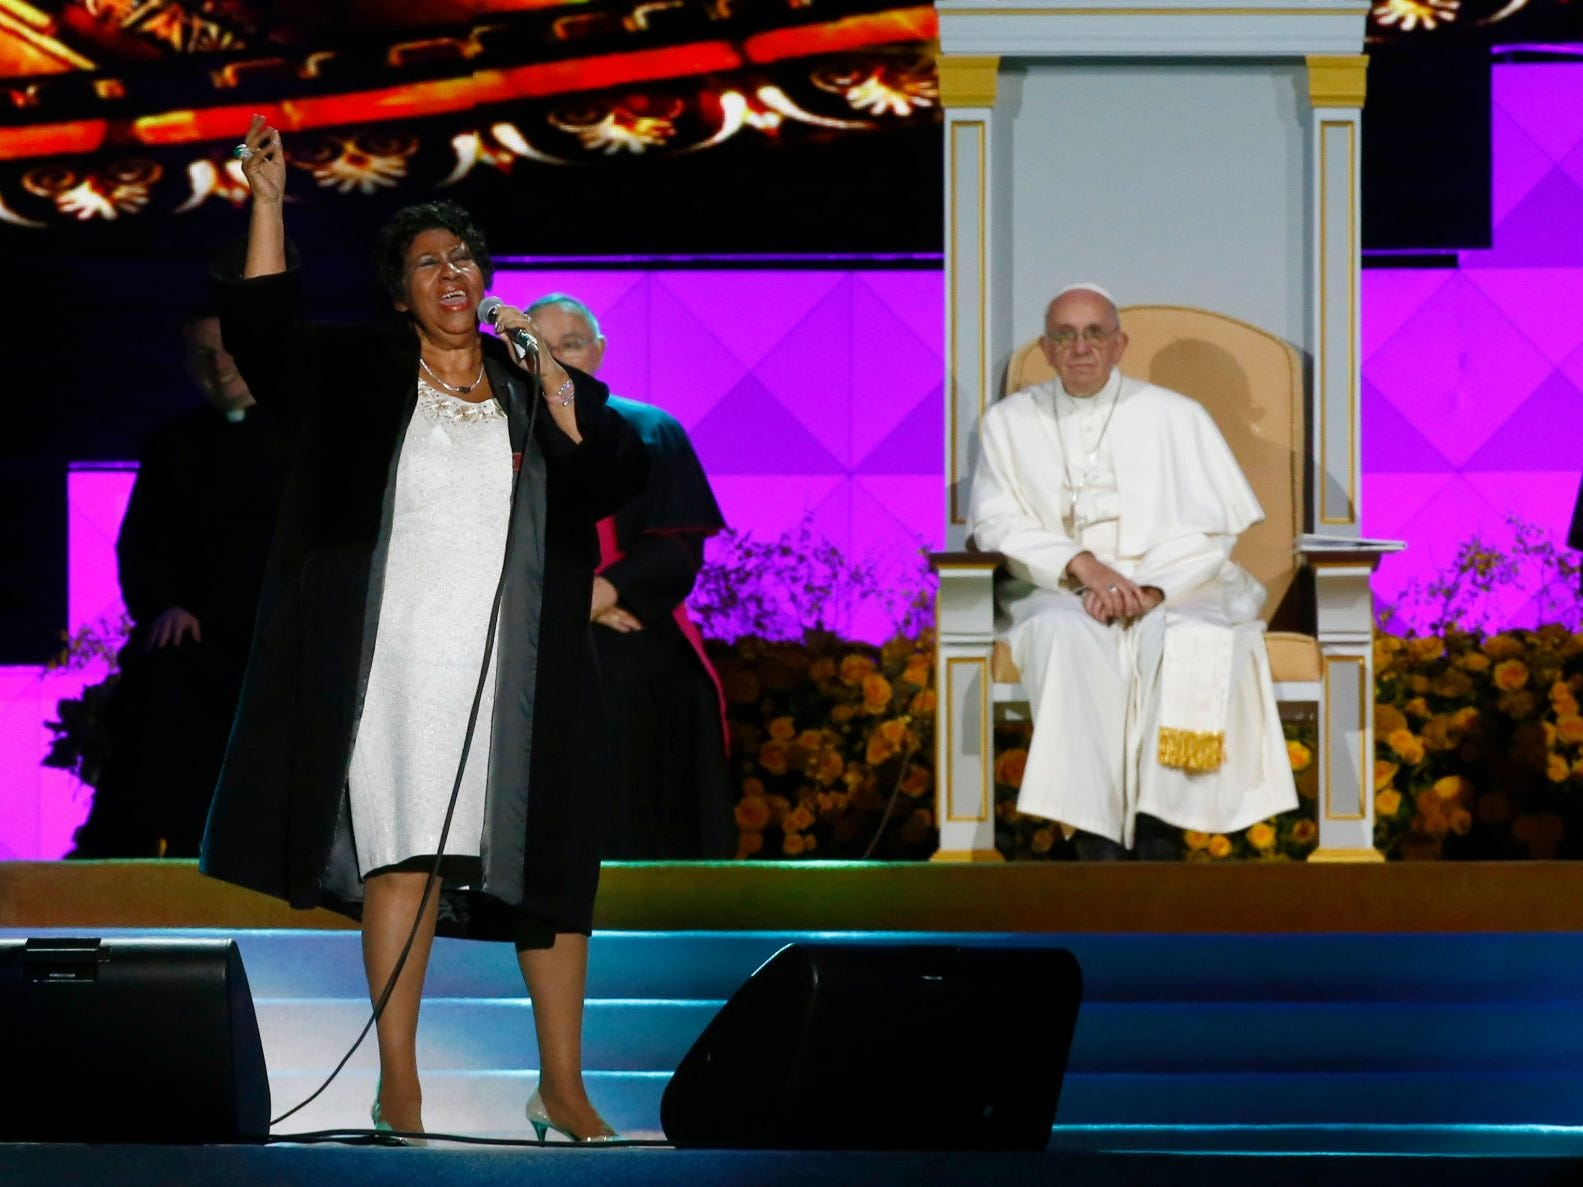 American singer Aretha Franklin sings as Pope Francis and others listen during the World Meeting of Families festival in Philadelphia, Saturday, Sept. 26, 2015.